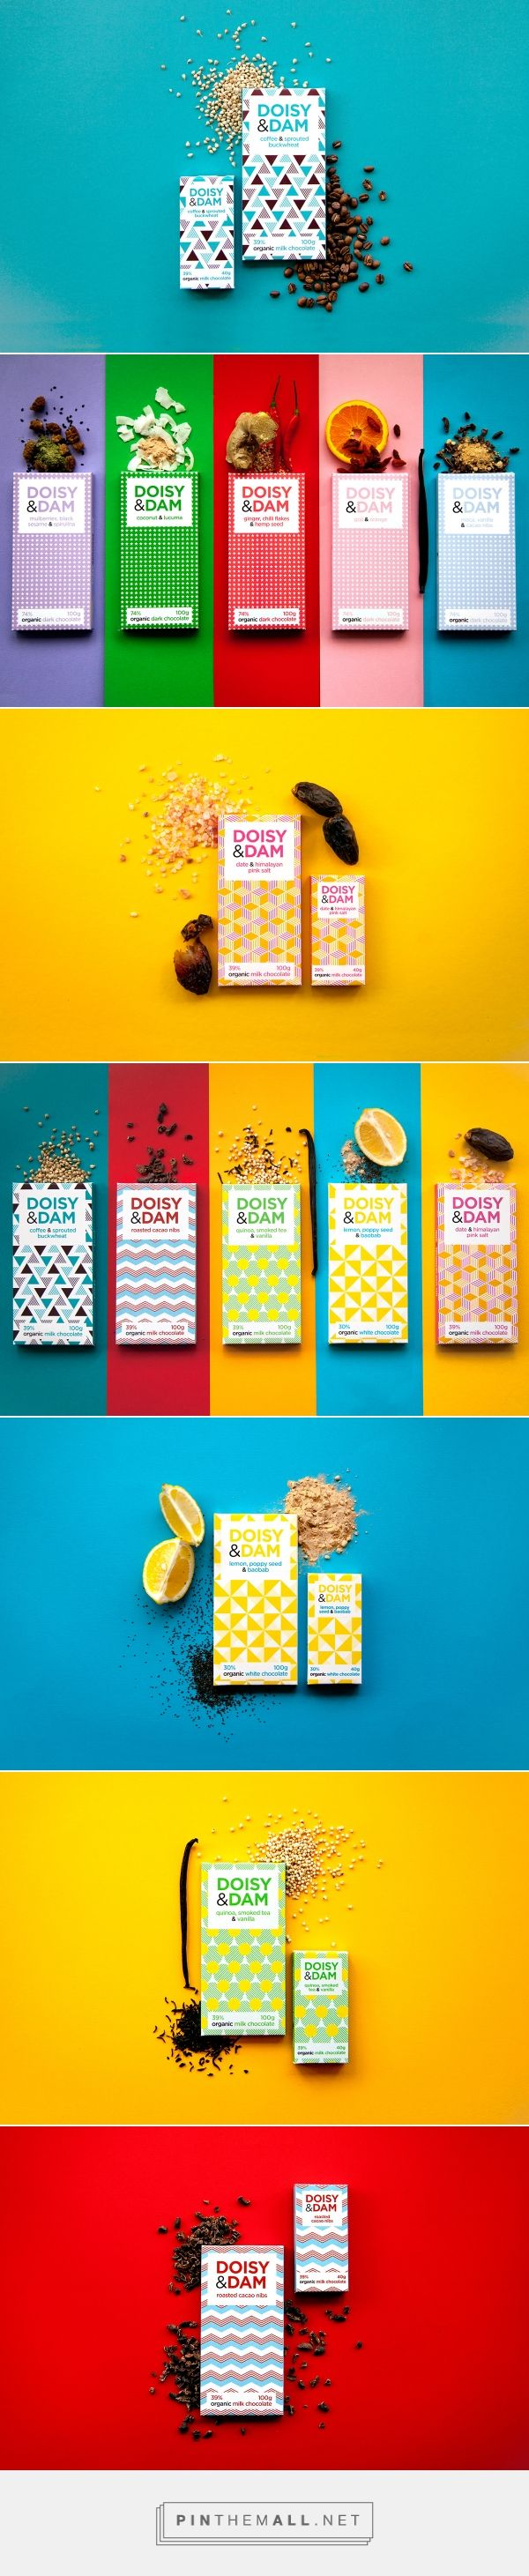 Doisy & Dam Packaging (new range & development) on Behance by Beth Salter curated by Packaging Diva PD. More chocolate packaging inspiration for the team : )